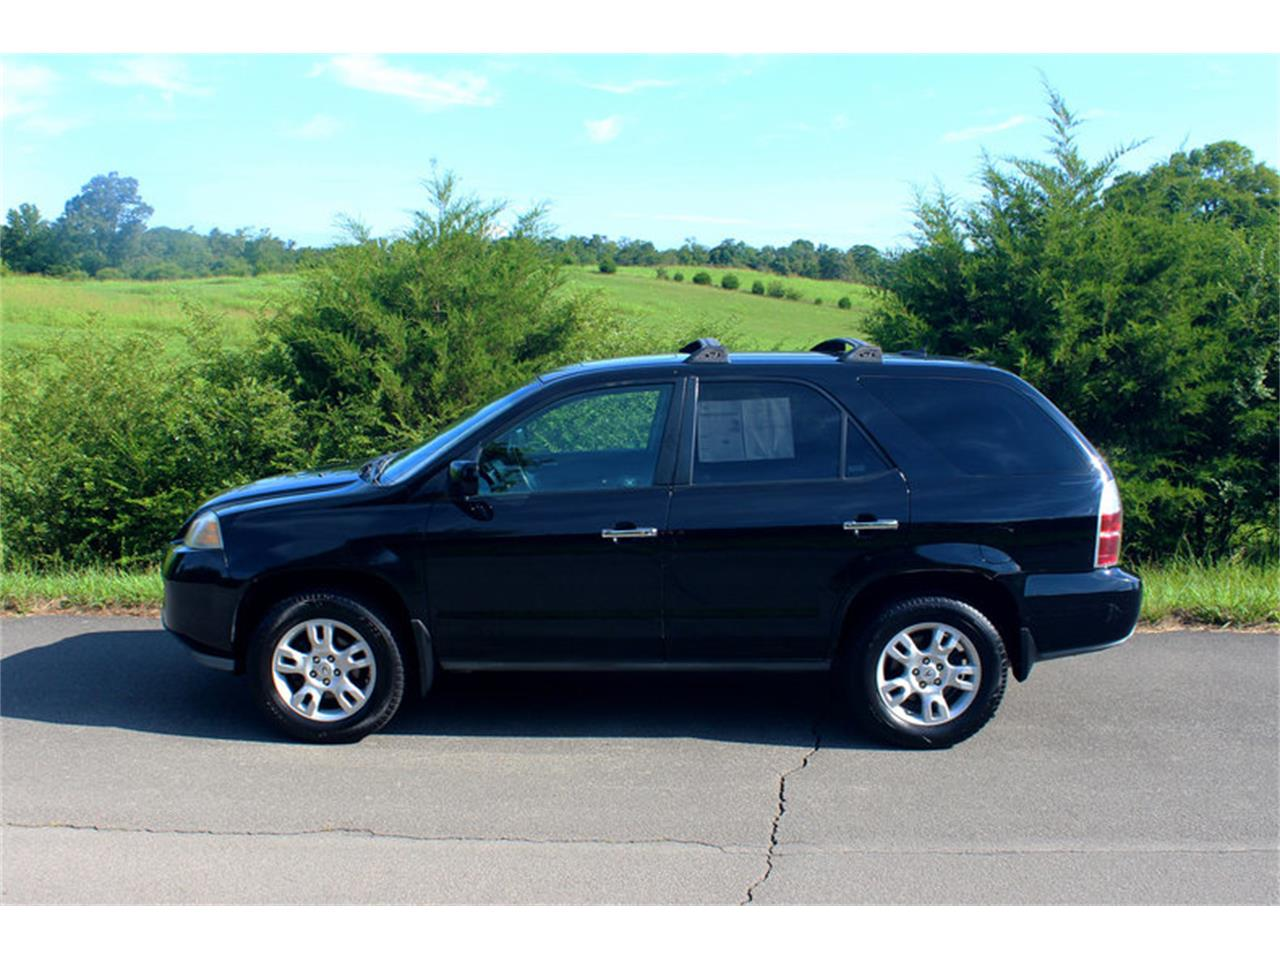 Large Picture of 2005 Acura MDX located in Lenoir City Tennessee - $3,995.00 - O91K